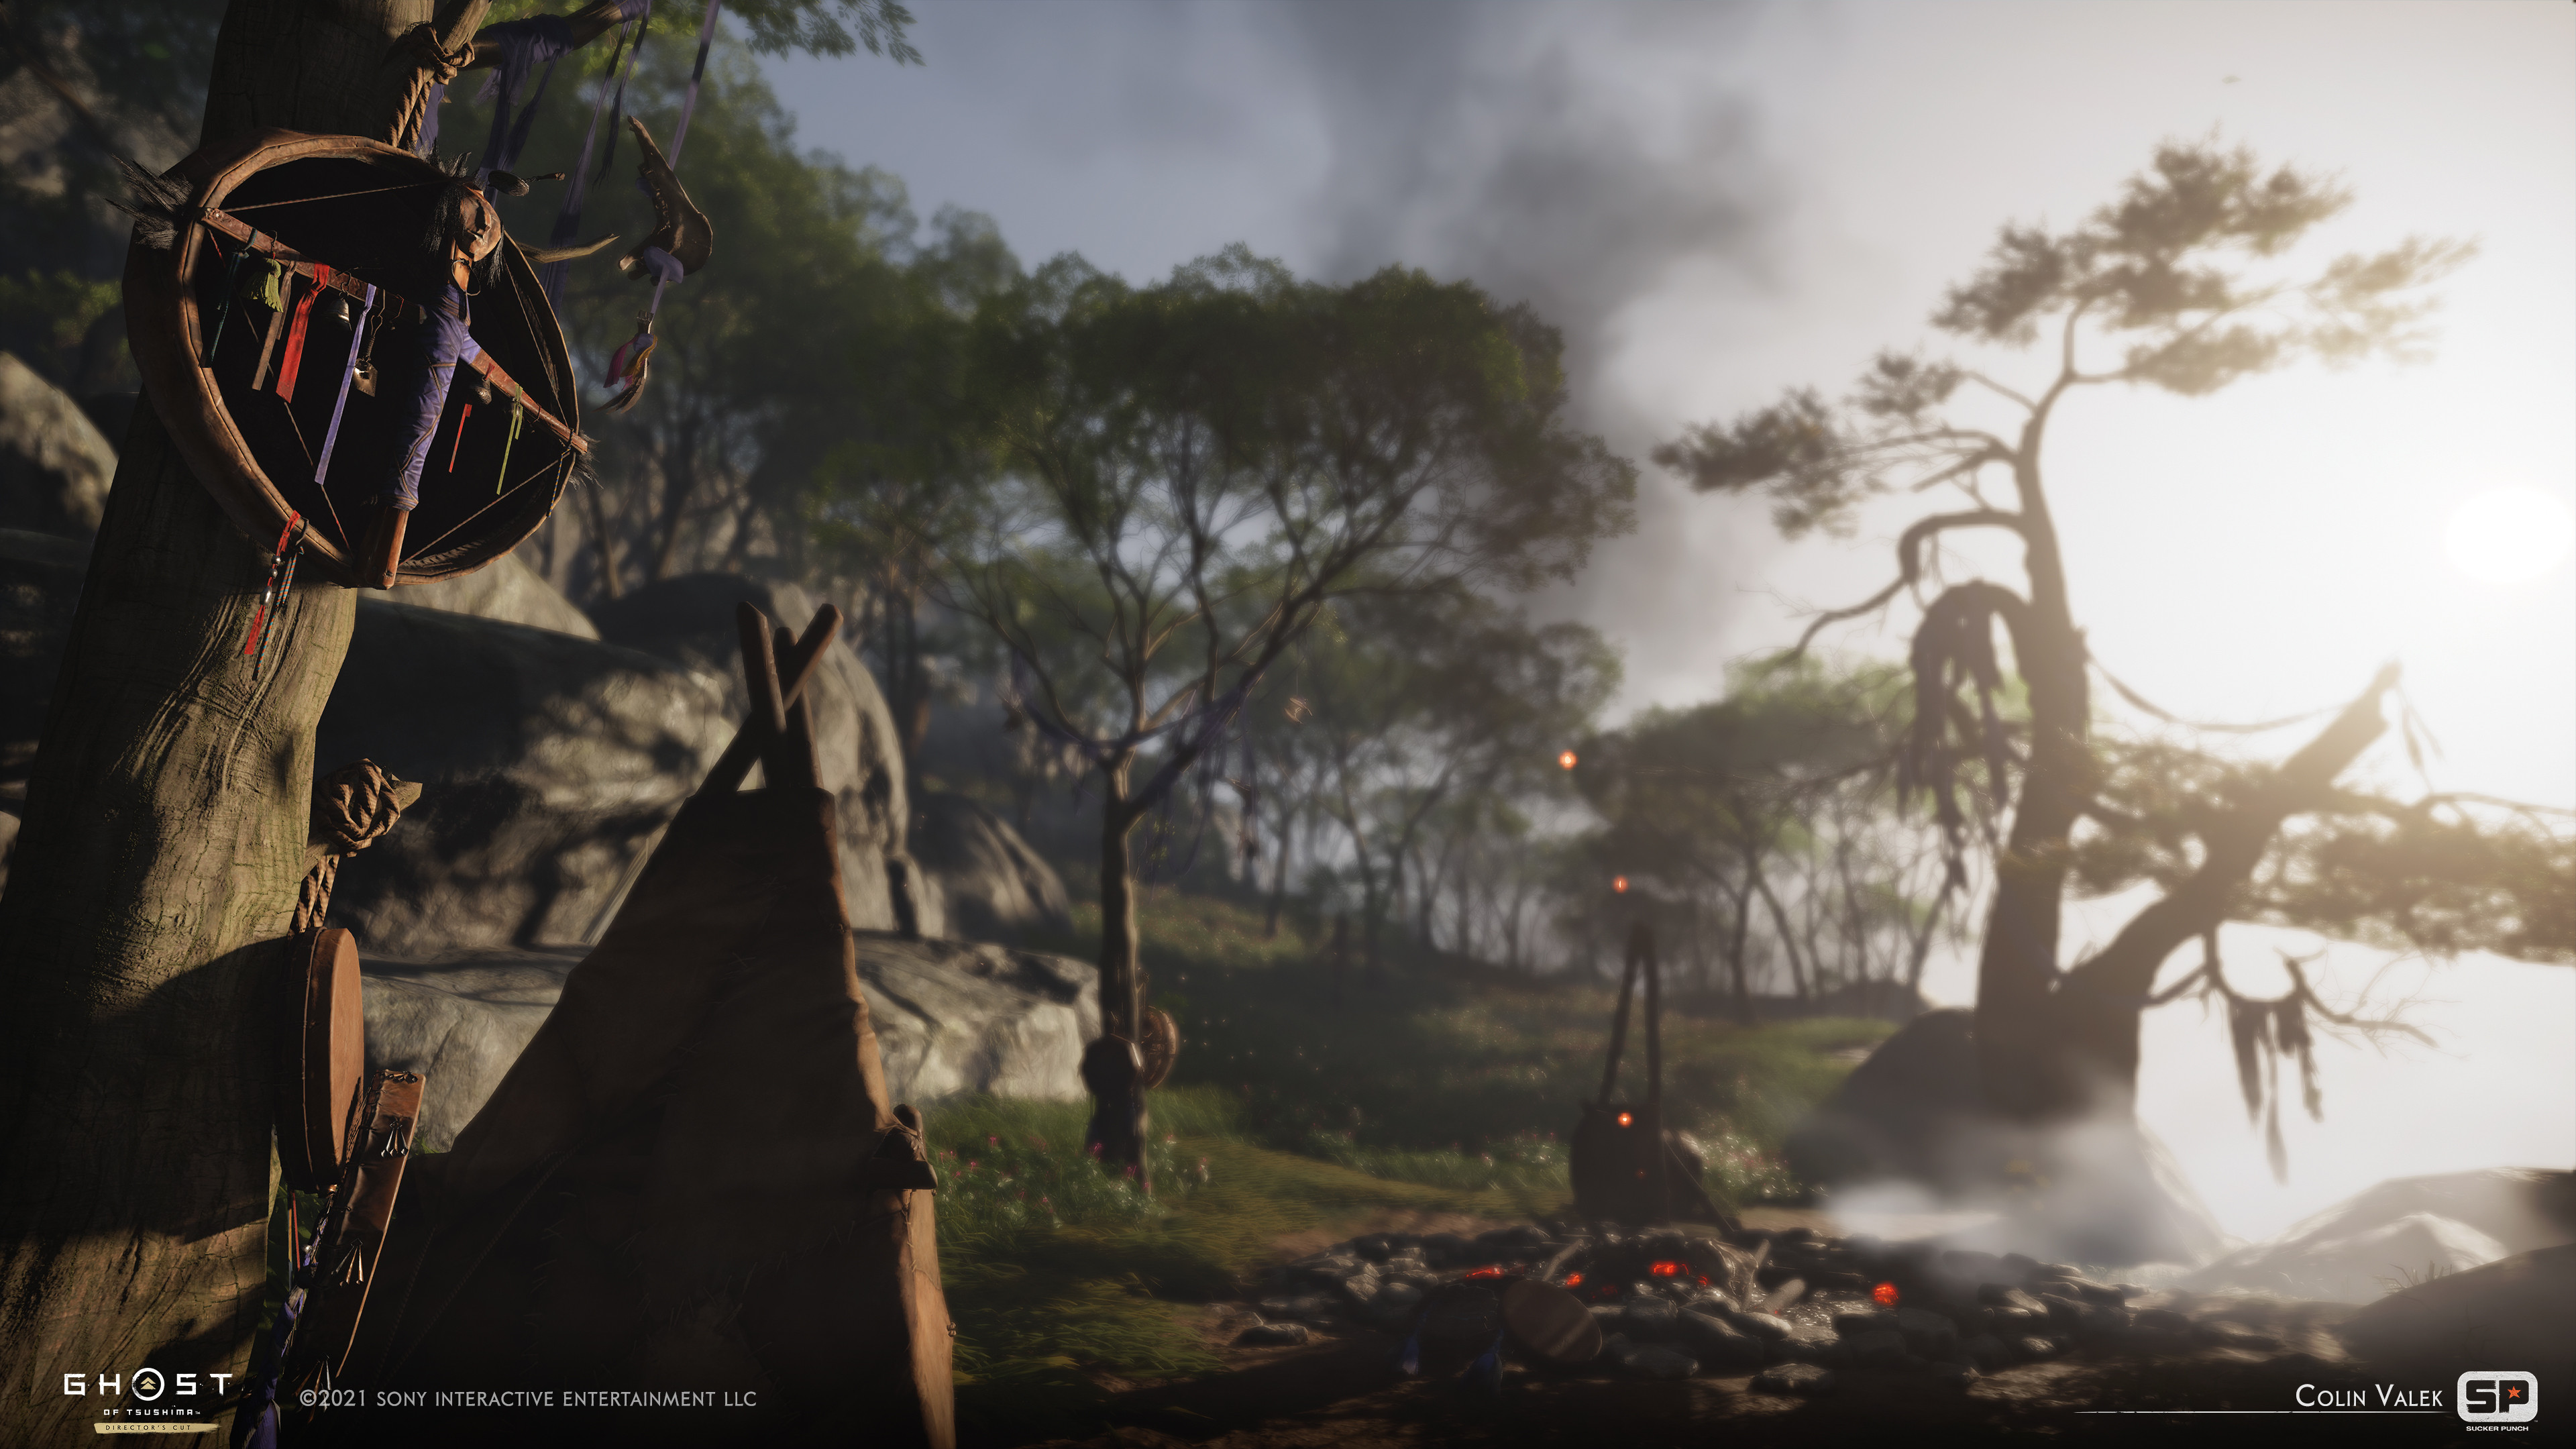 Environment/Prop set dressing, hanging shaman cloth added to trees.